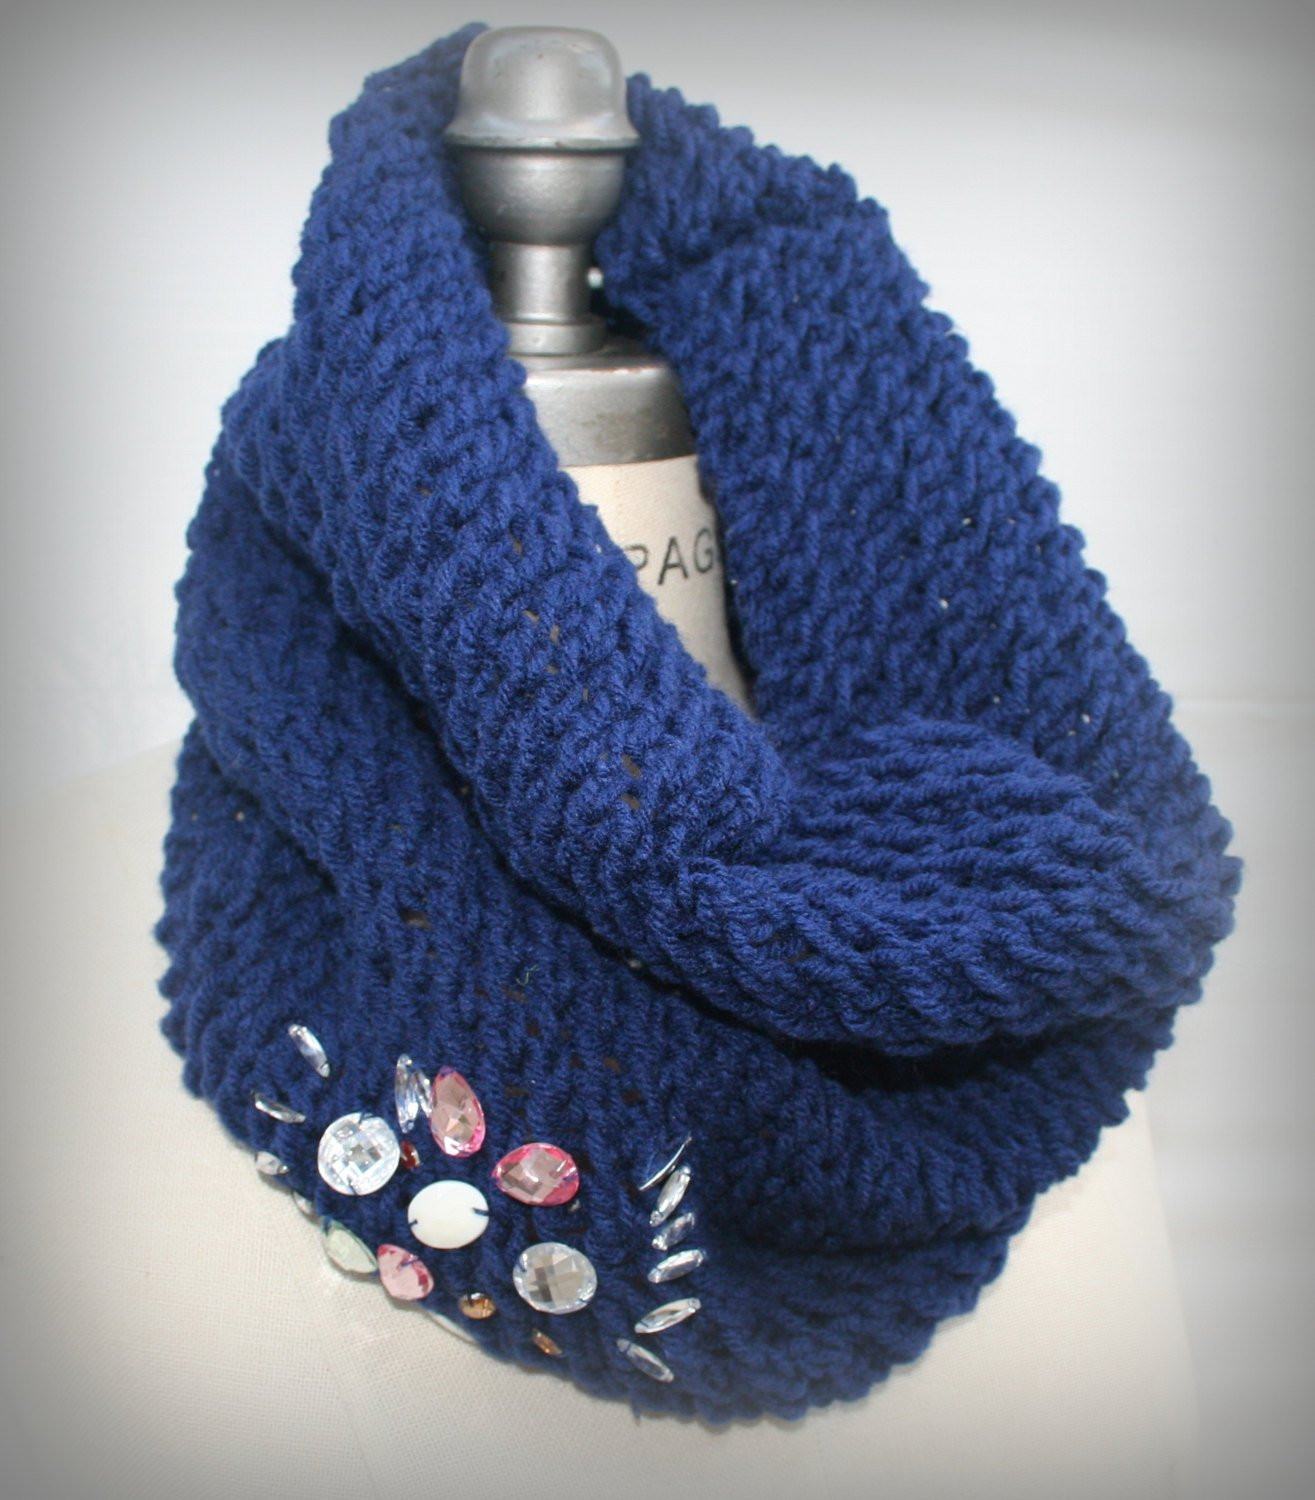 Inspirational Blue Hand Knit Cowl Handknit Cowl Scarf Jewellery Loop Cowl Scarf Of Innovative 48 Photos Cowl Scarf